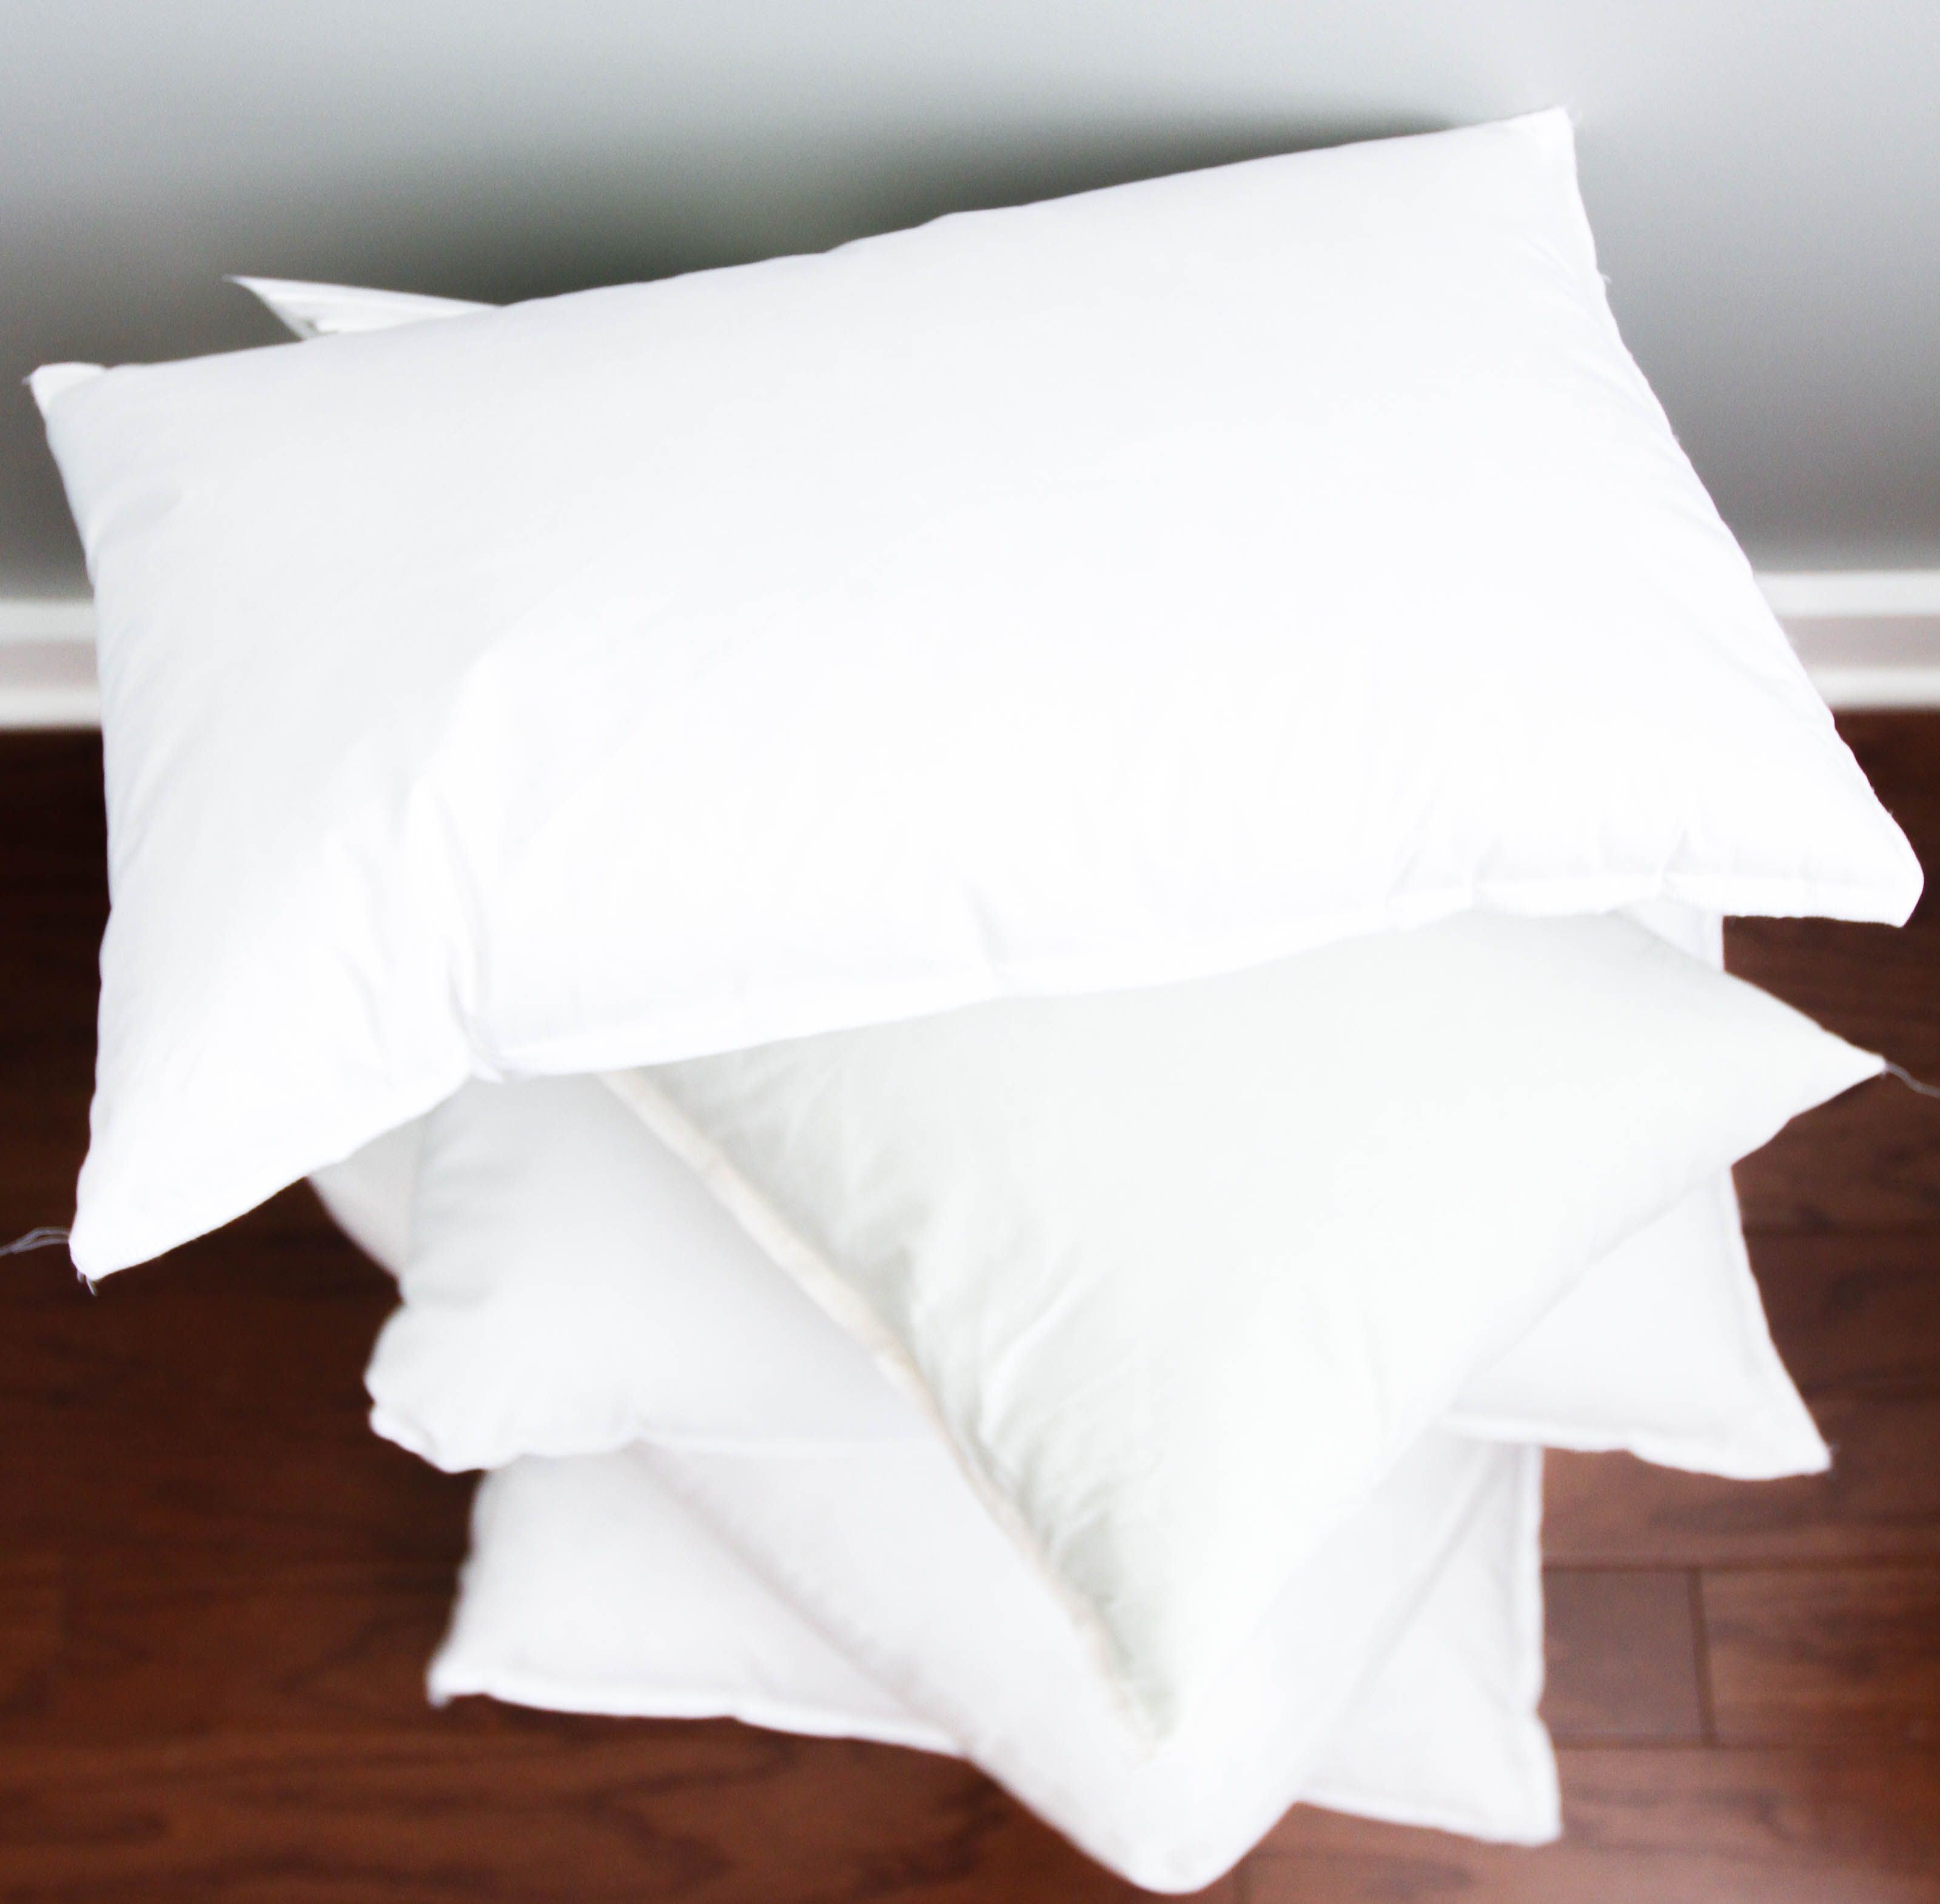 Wholesale Pillows With Images Pillows Buy Pillows Quality Pillows